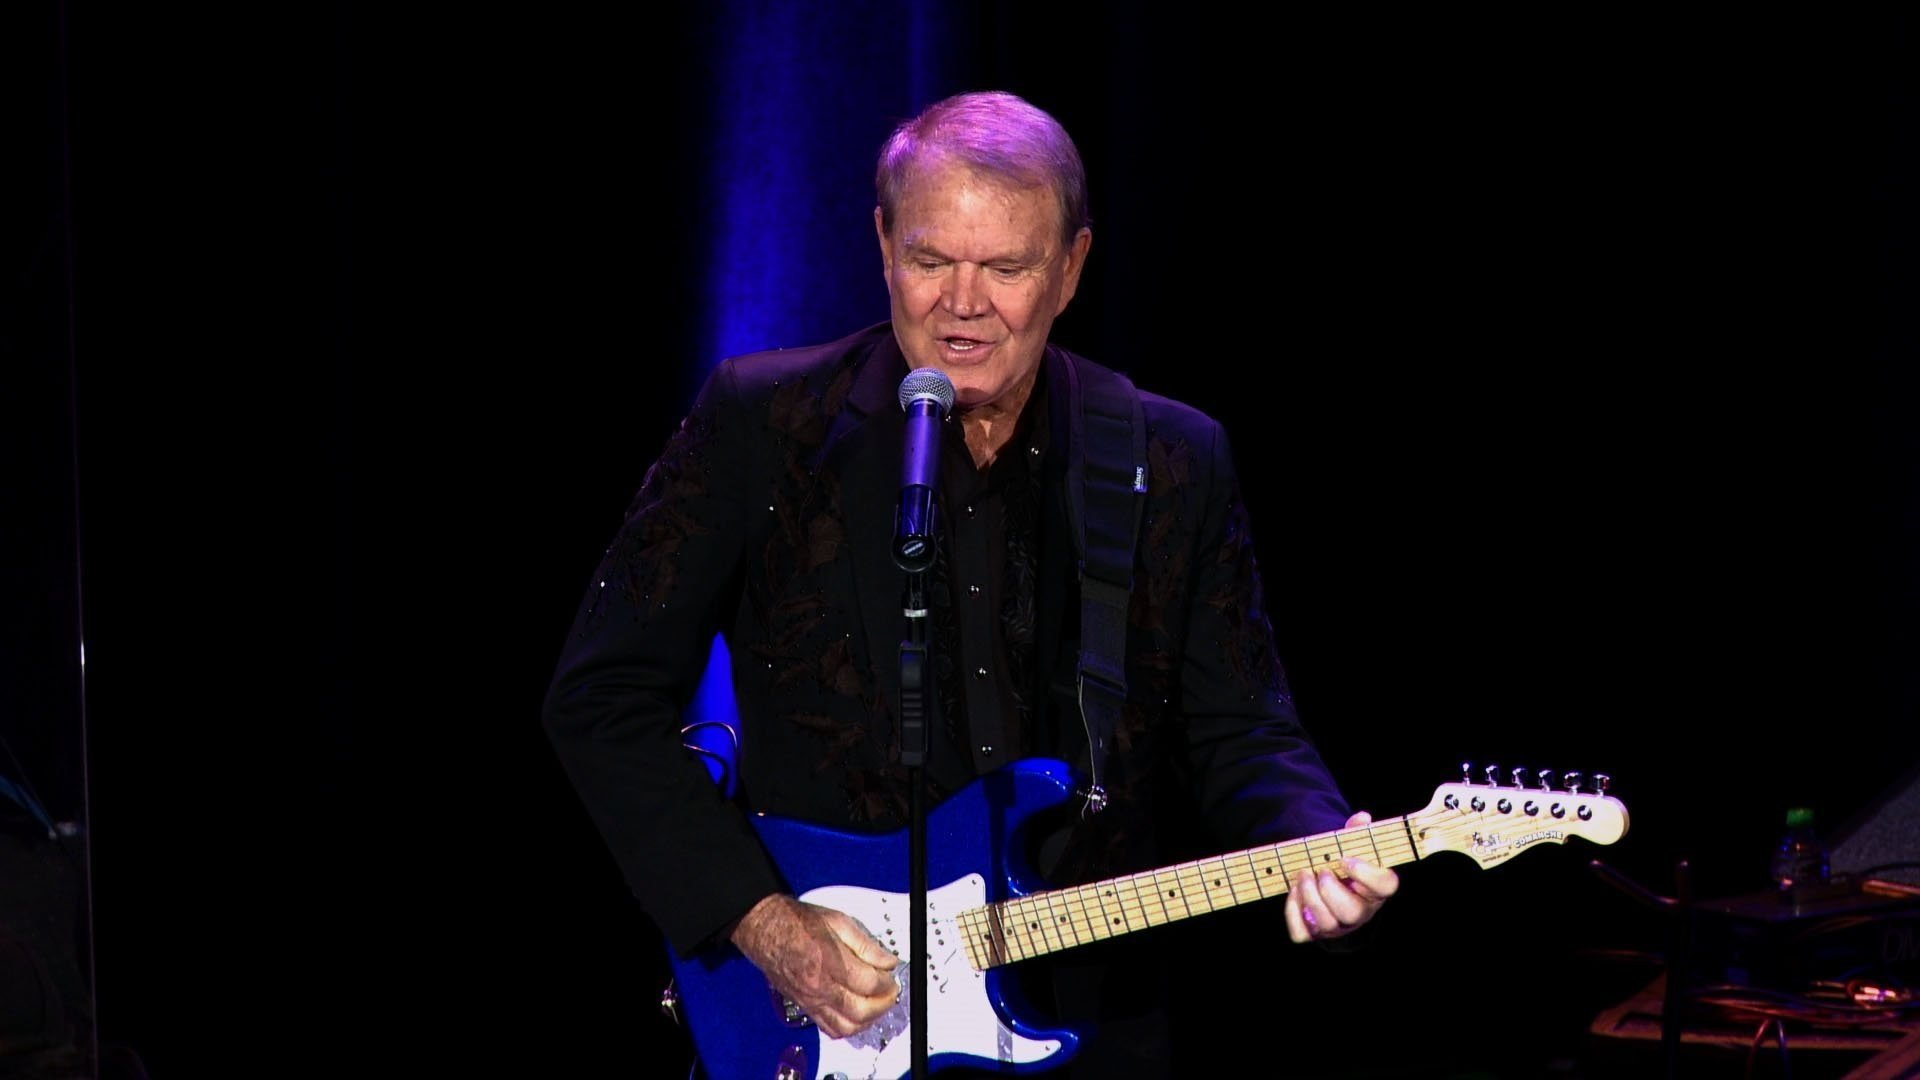 Iconic country music singer and guitarist Glen Campbell passed away at age 81 on August 8, 2017. (CNN file photo)